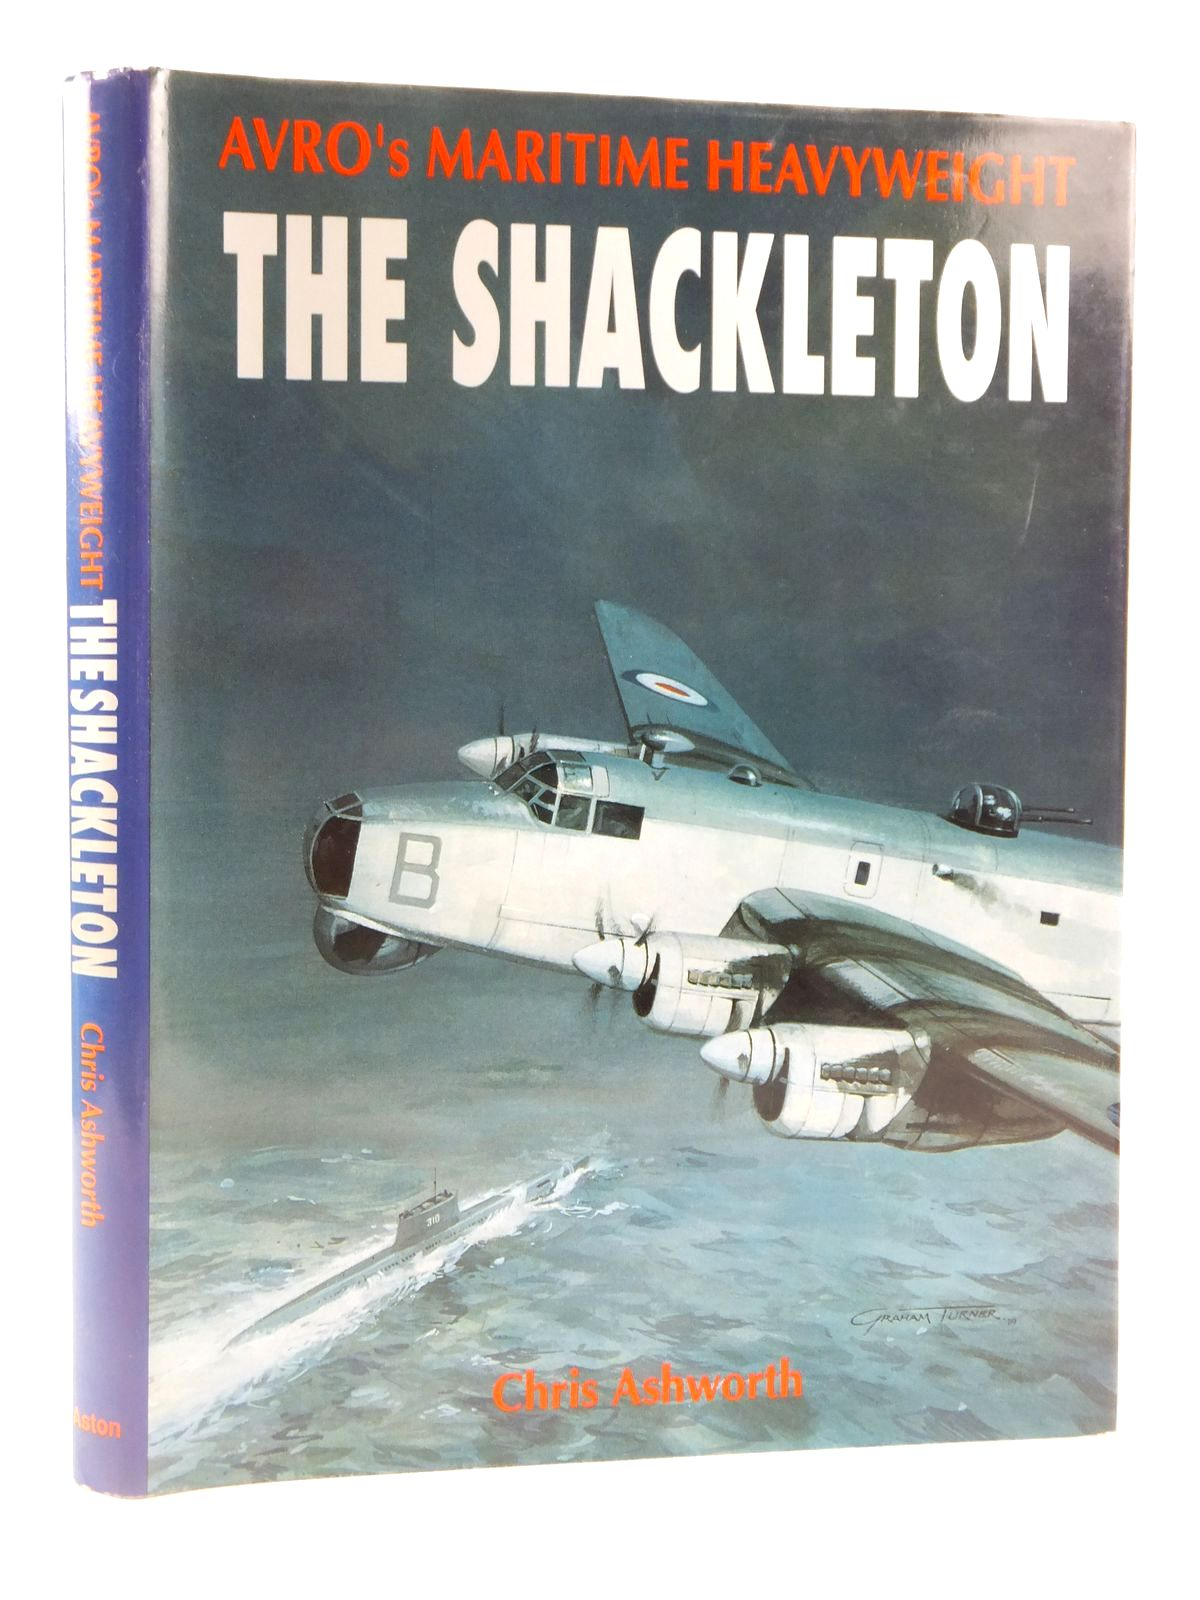 Photo of AVRO'S MARITIME HEAVYWEIGHT: THE SHACKLETON written by Ashworth, Chris published by Aston Publications (STOCK CODE: 1608496)  for sale by Stella & Rose's Books